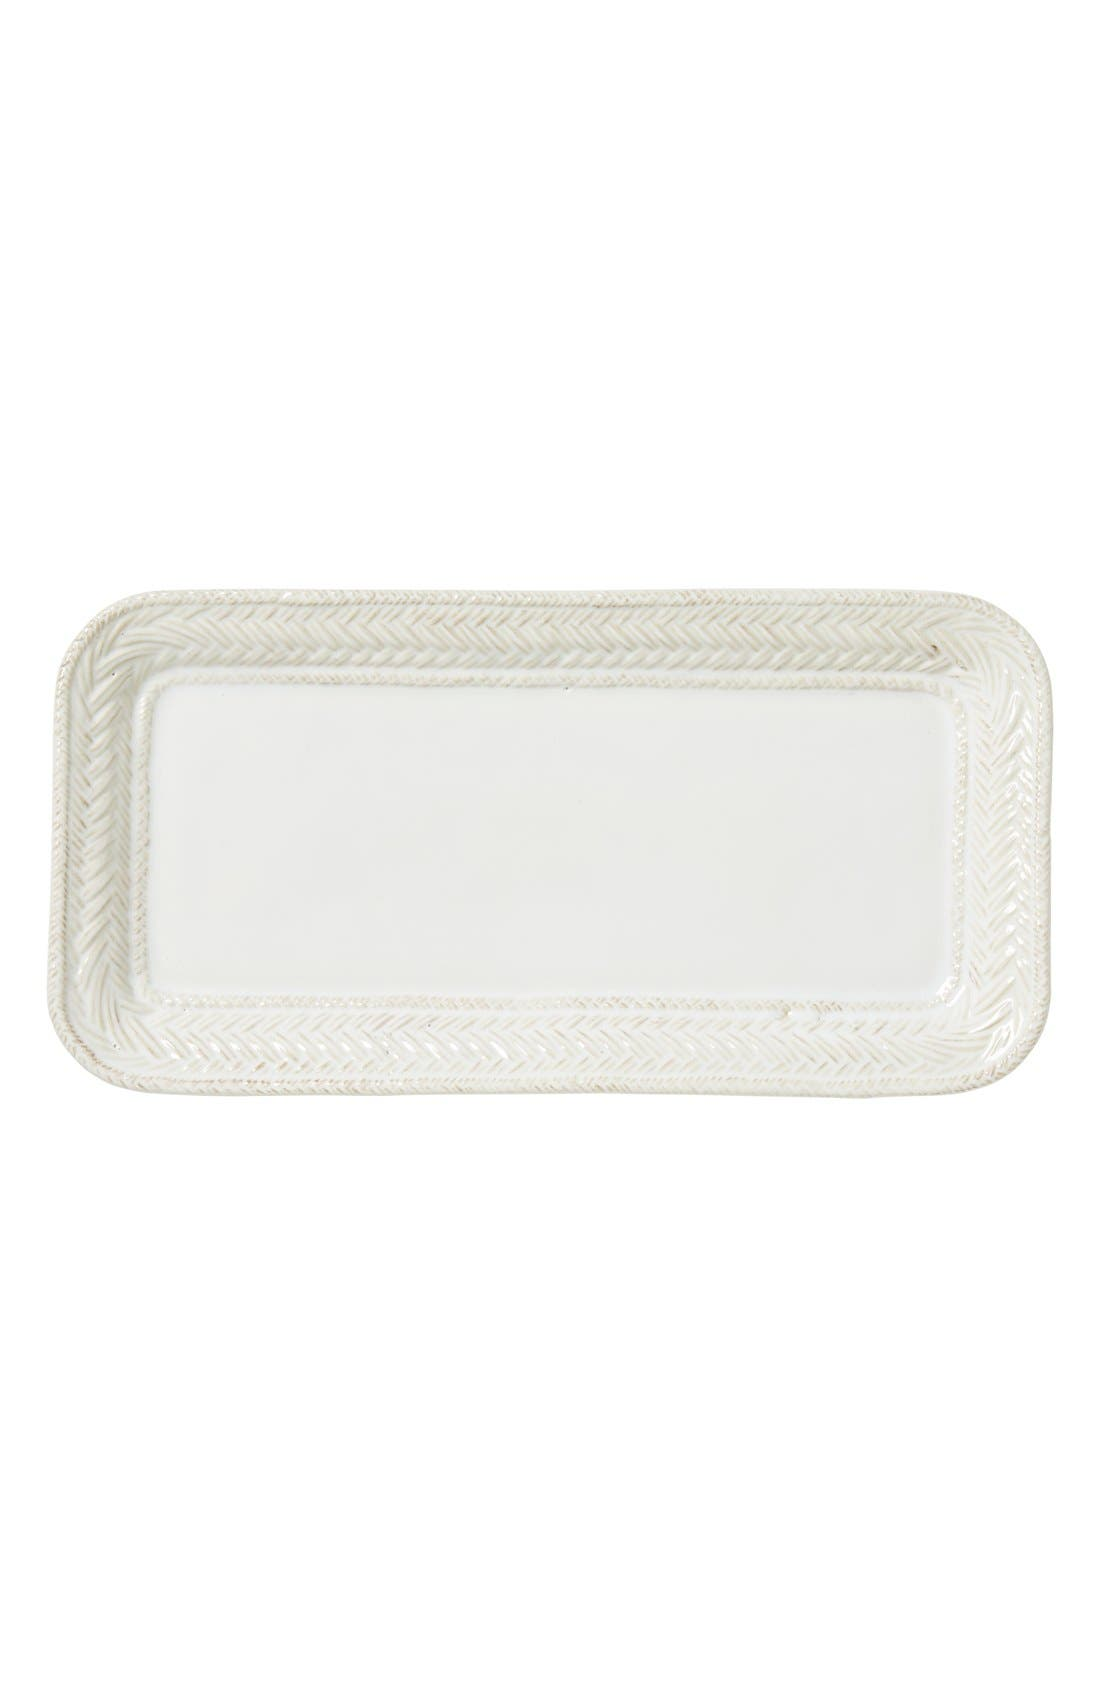 JULISKA Le Panier Stoneware Hostess Tray